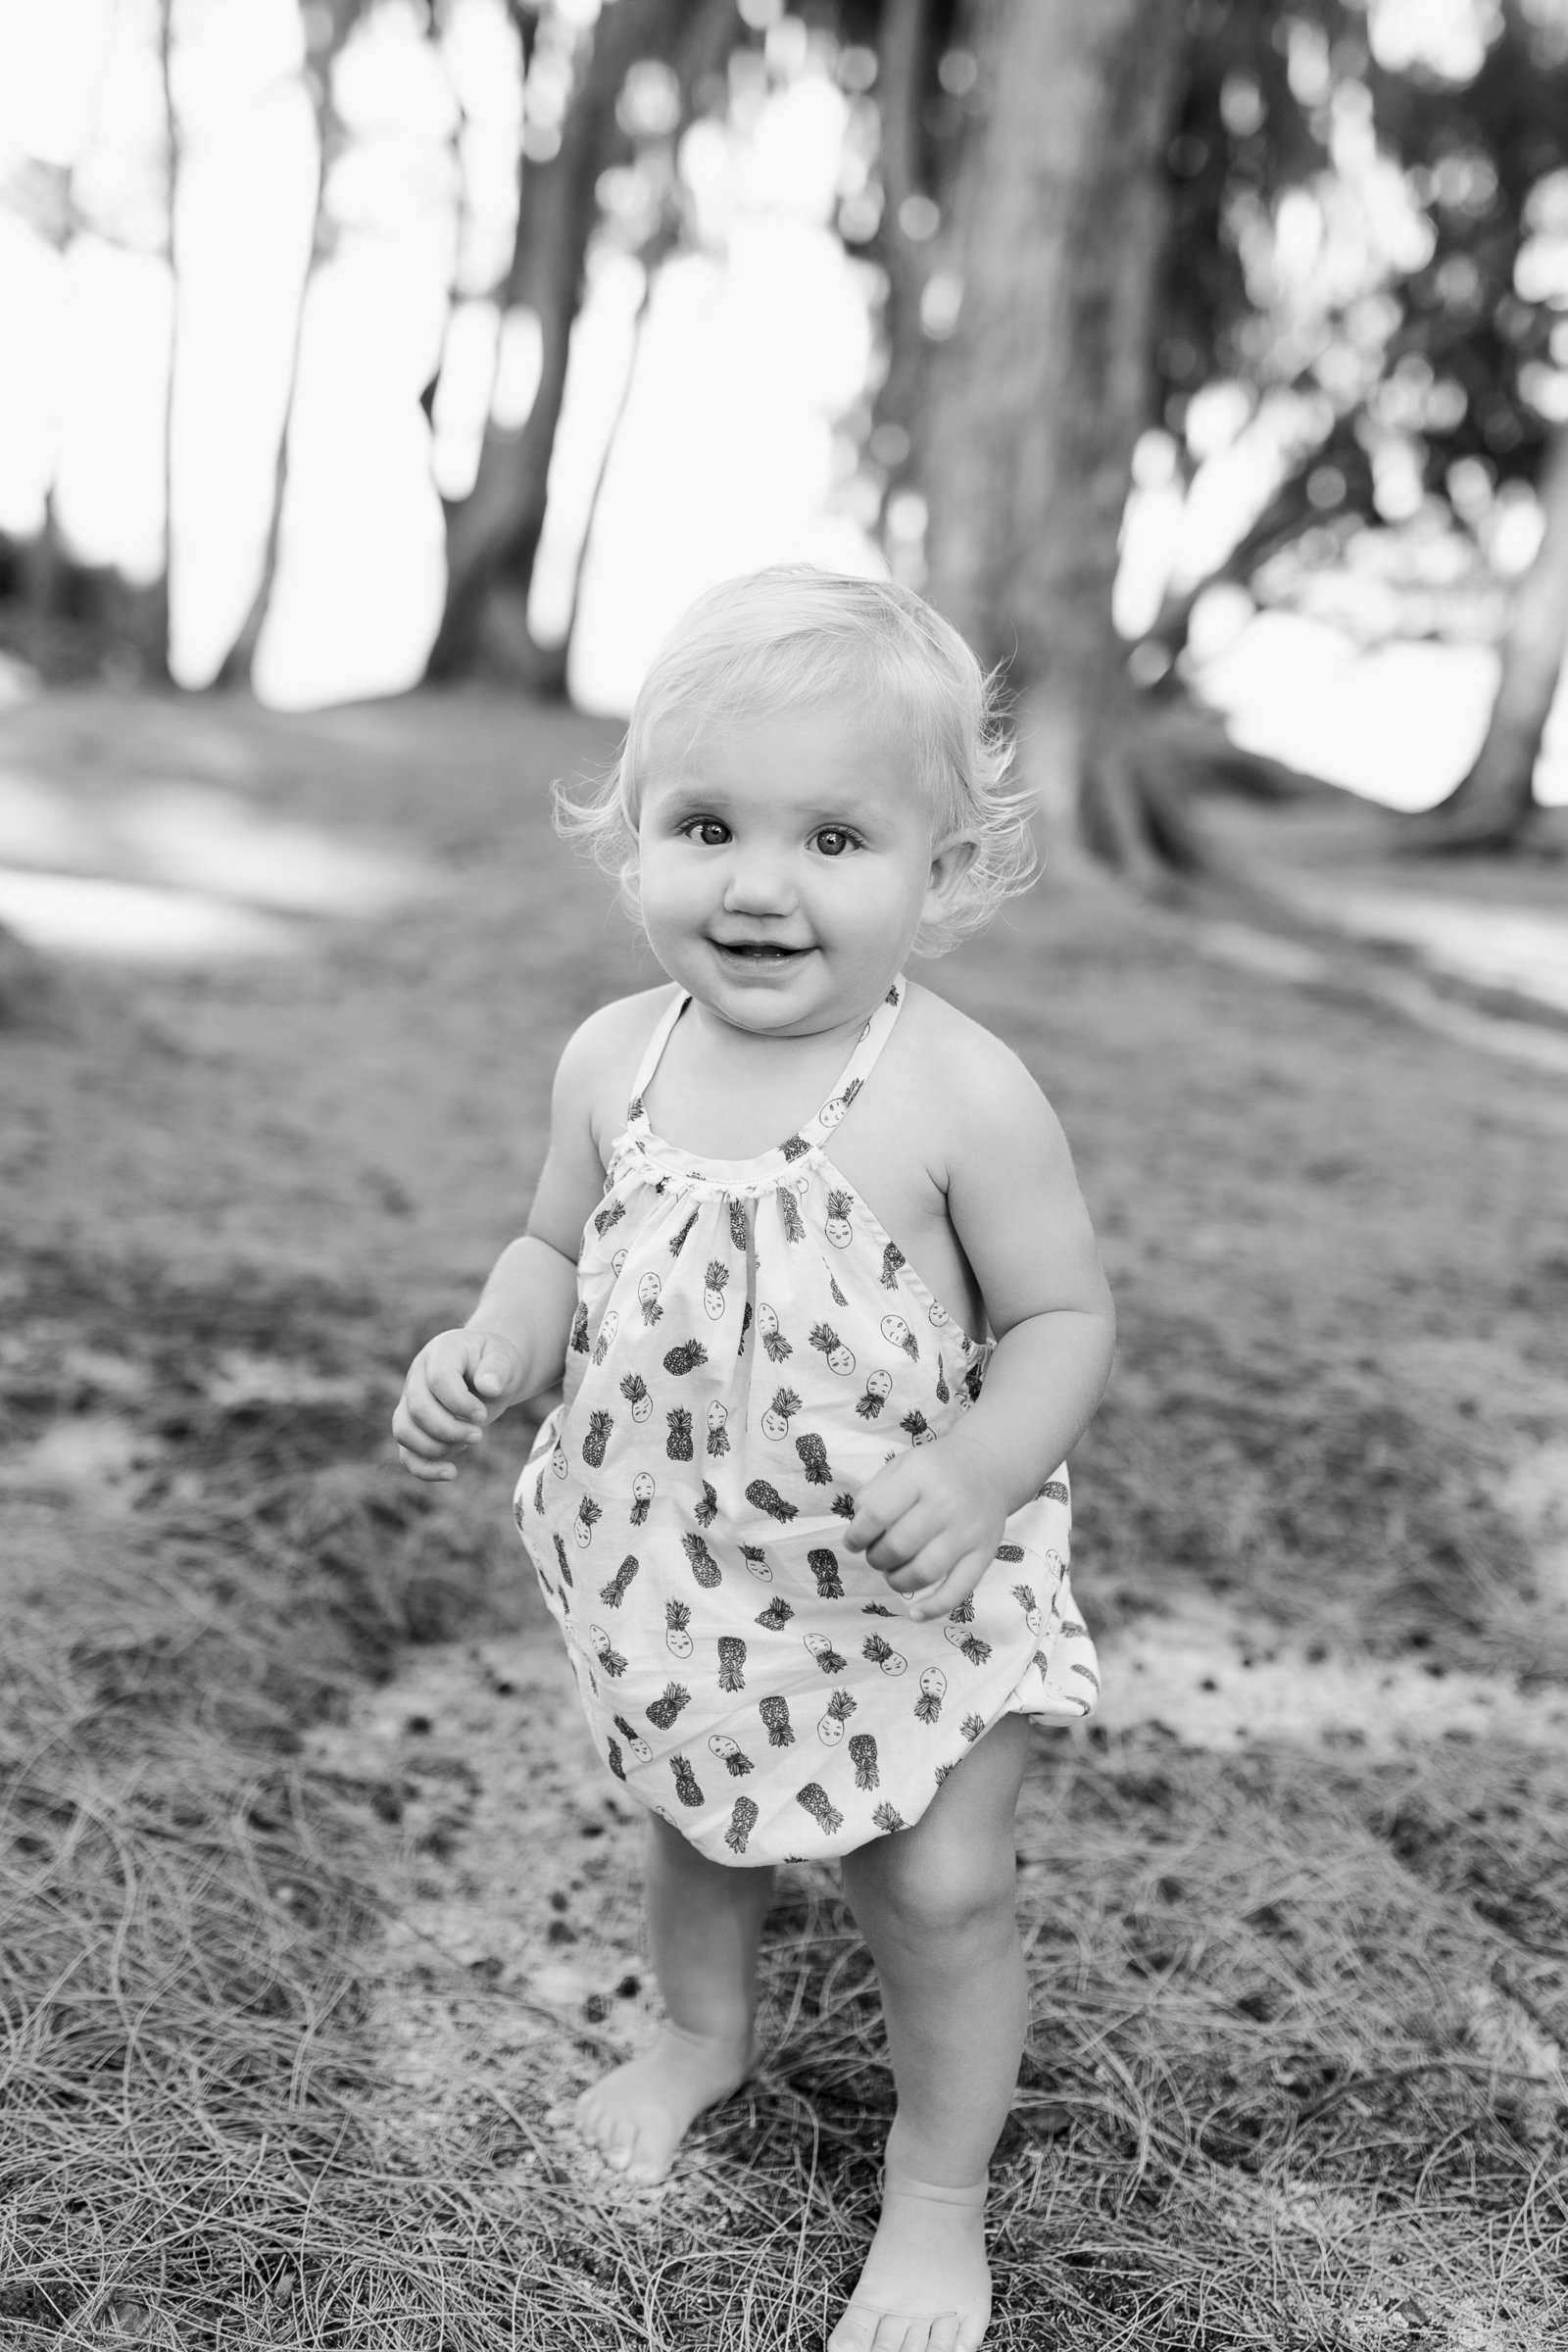 Oahu, Hawaii Lifestyle Photographer - Lifestyle Photography - Brooke Flanagan Photography - Little girl at the beach in black and white